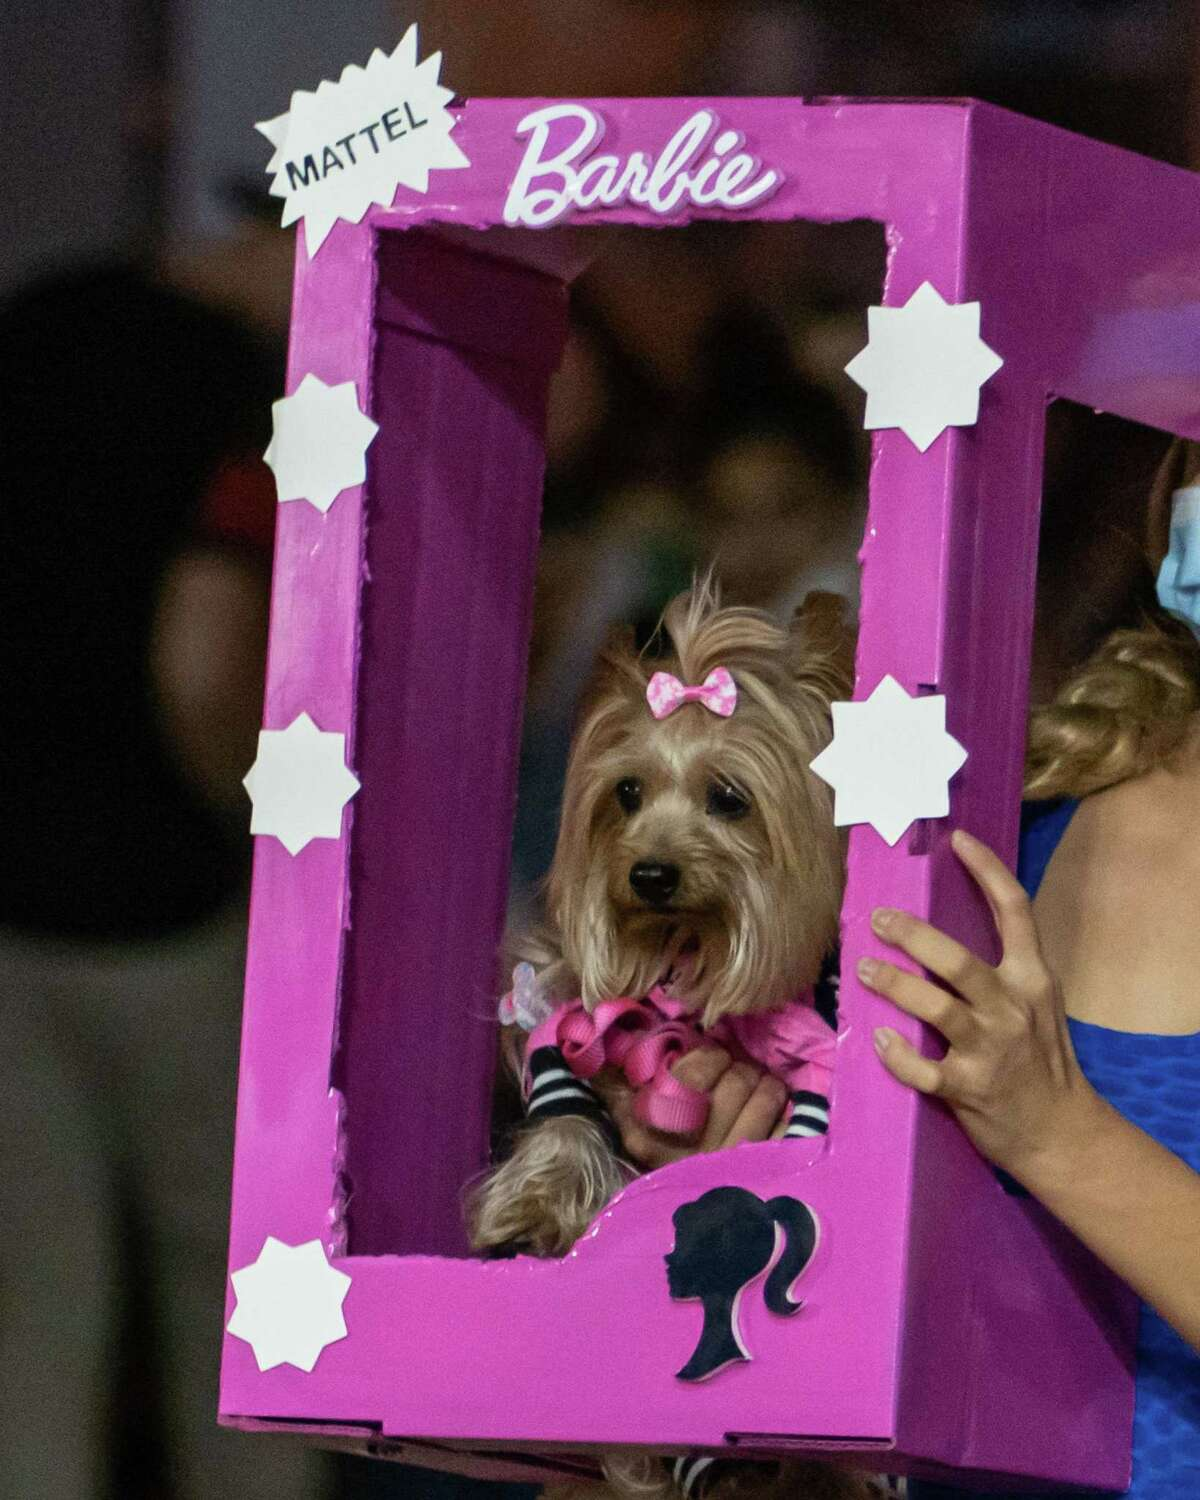 PawzUp DogFest is hosting its first event of 2021 in LOVE STINKS: A VALENTINES DOG FESTIVAL Saturday, Feb. 6 at 10 am-noon, at CityPlace Springwoods Village in Spring. The organization's last festival, DOGULA, was a Halloween themed event.